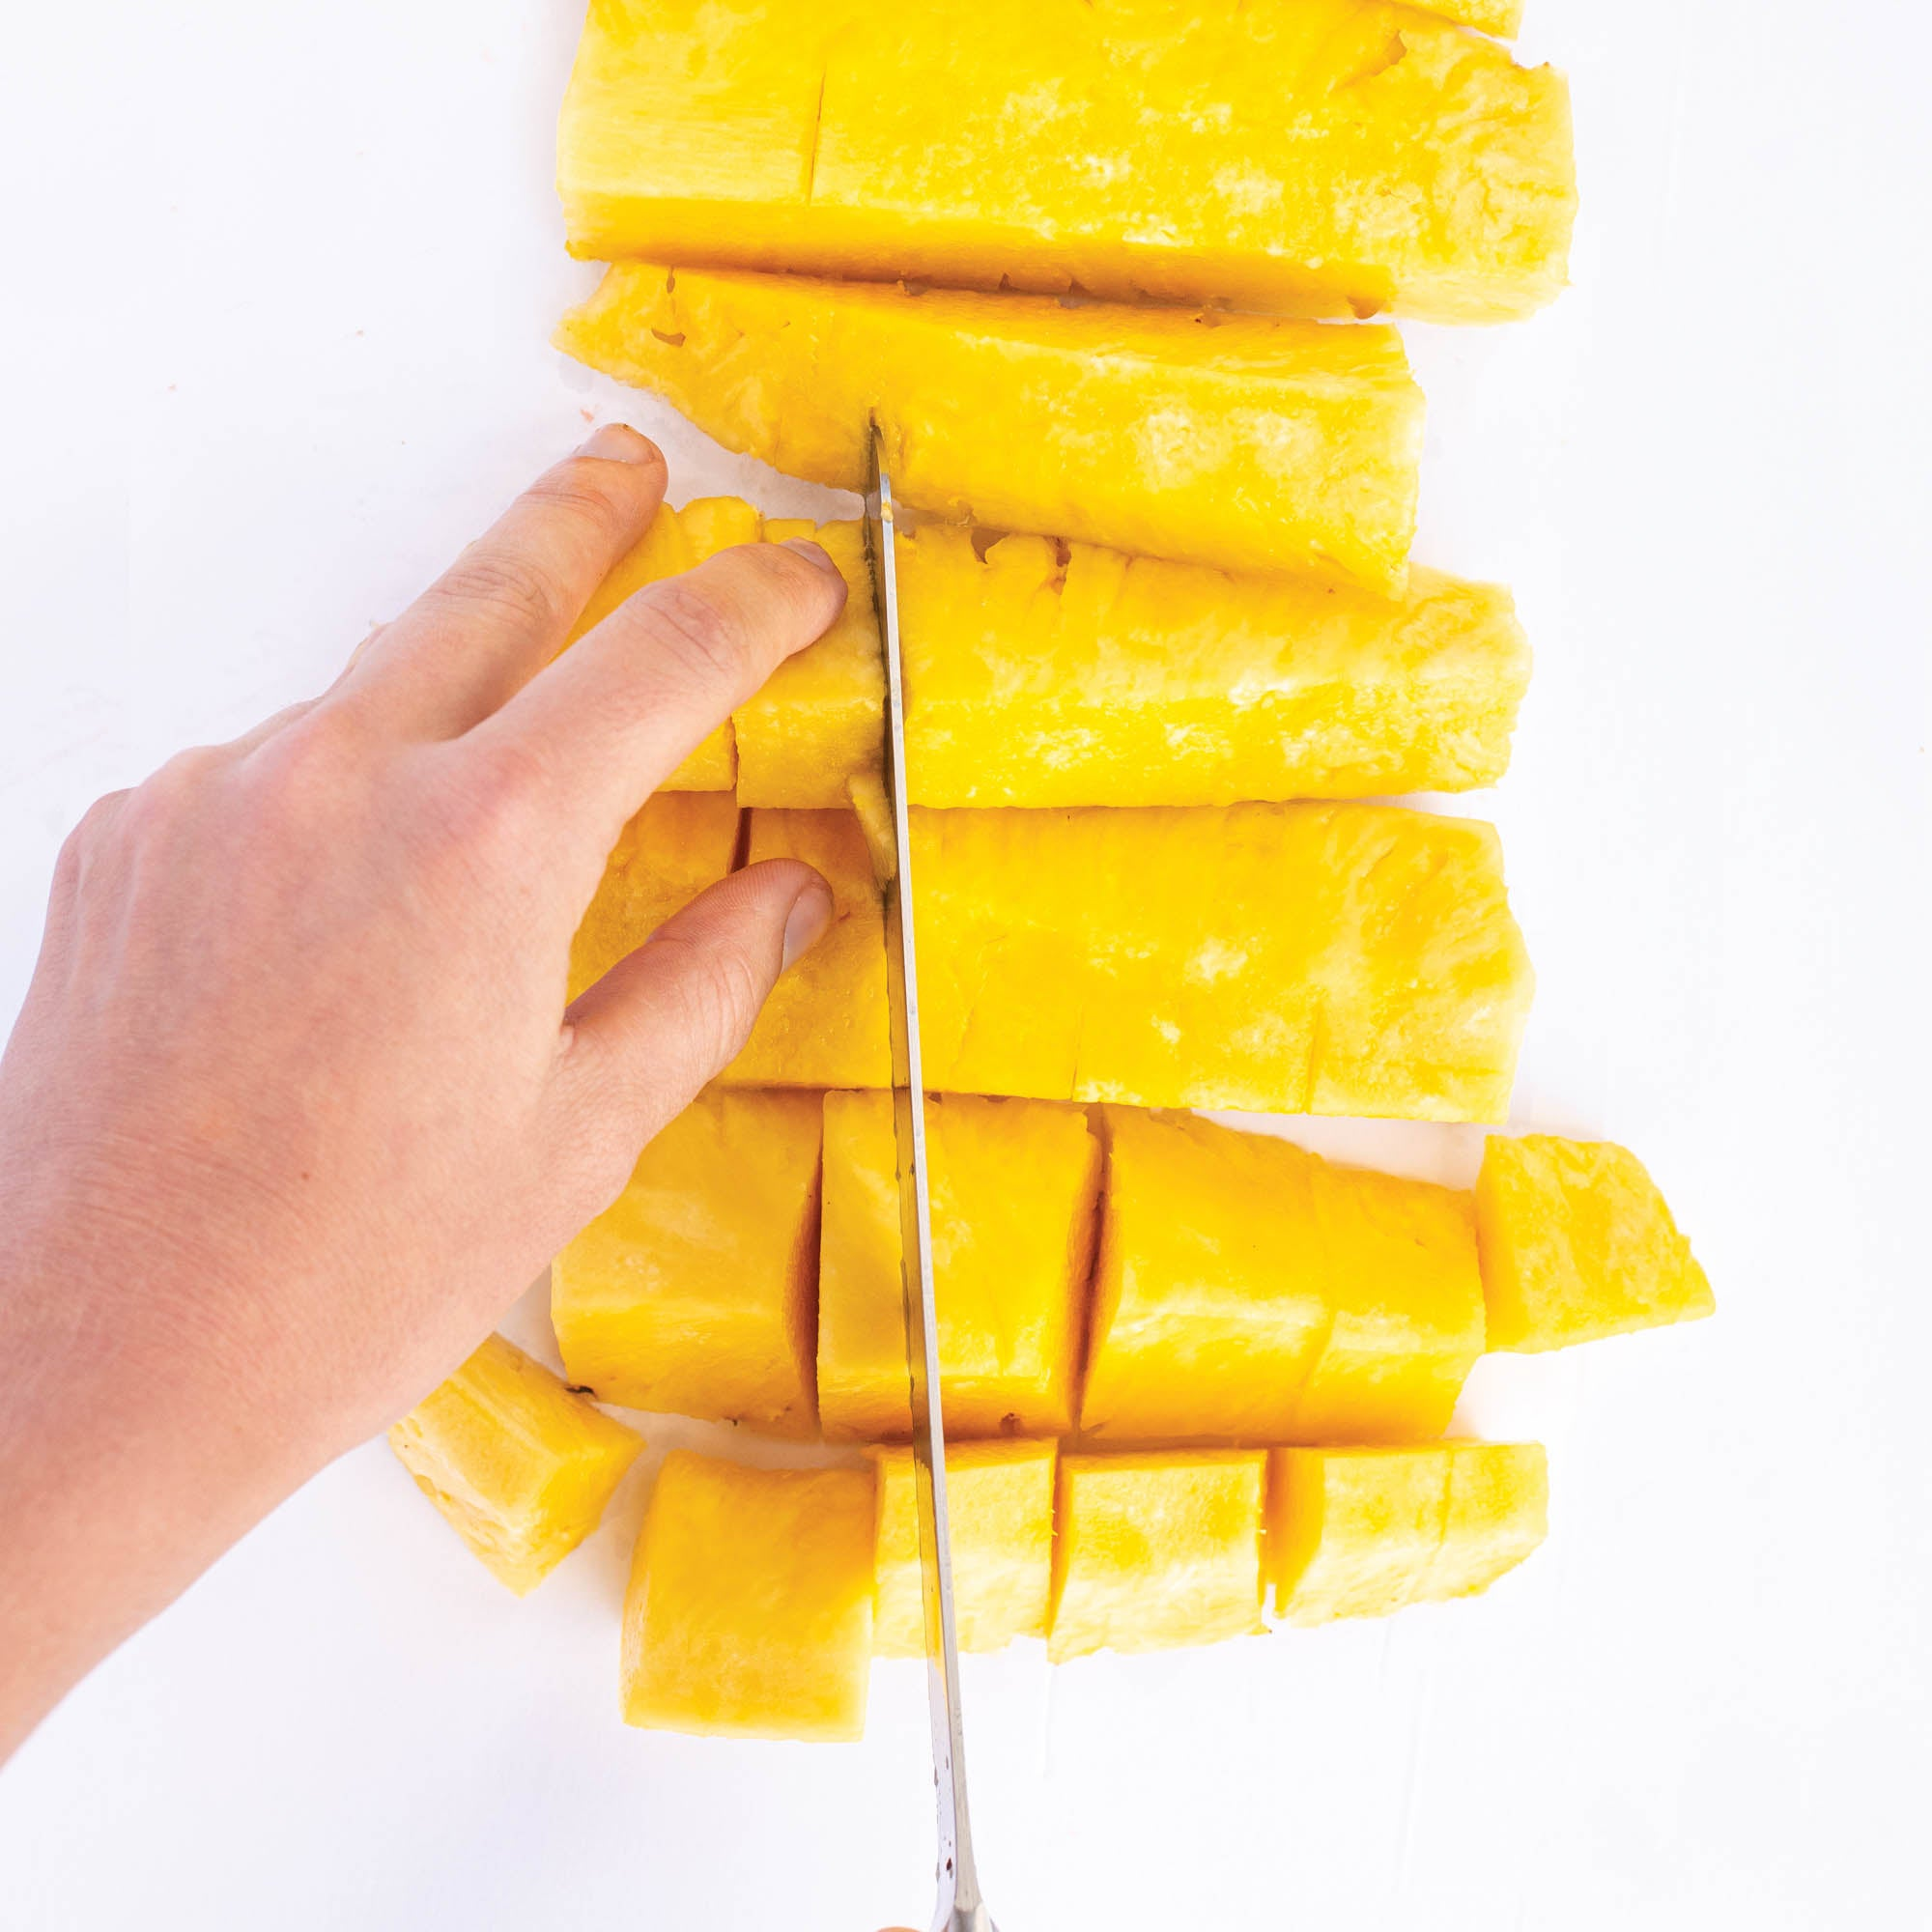 Slicing pineapple into bite-sized pieces